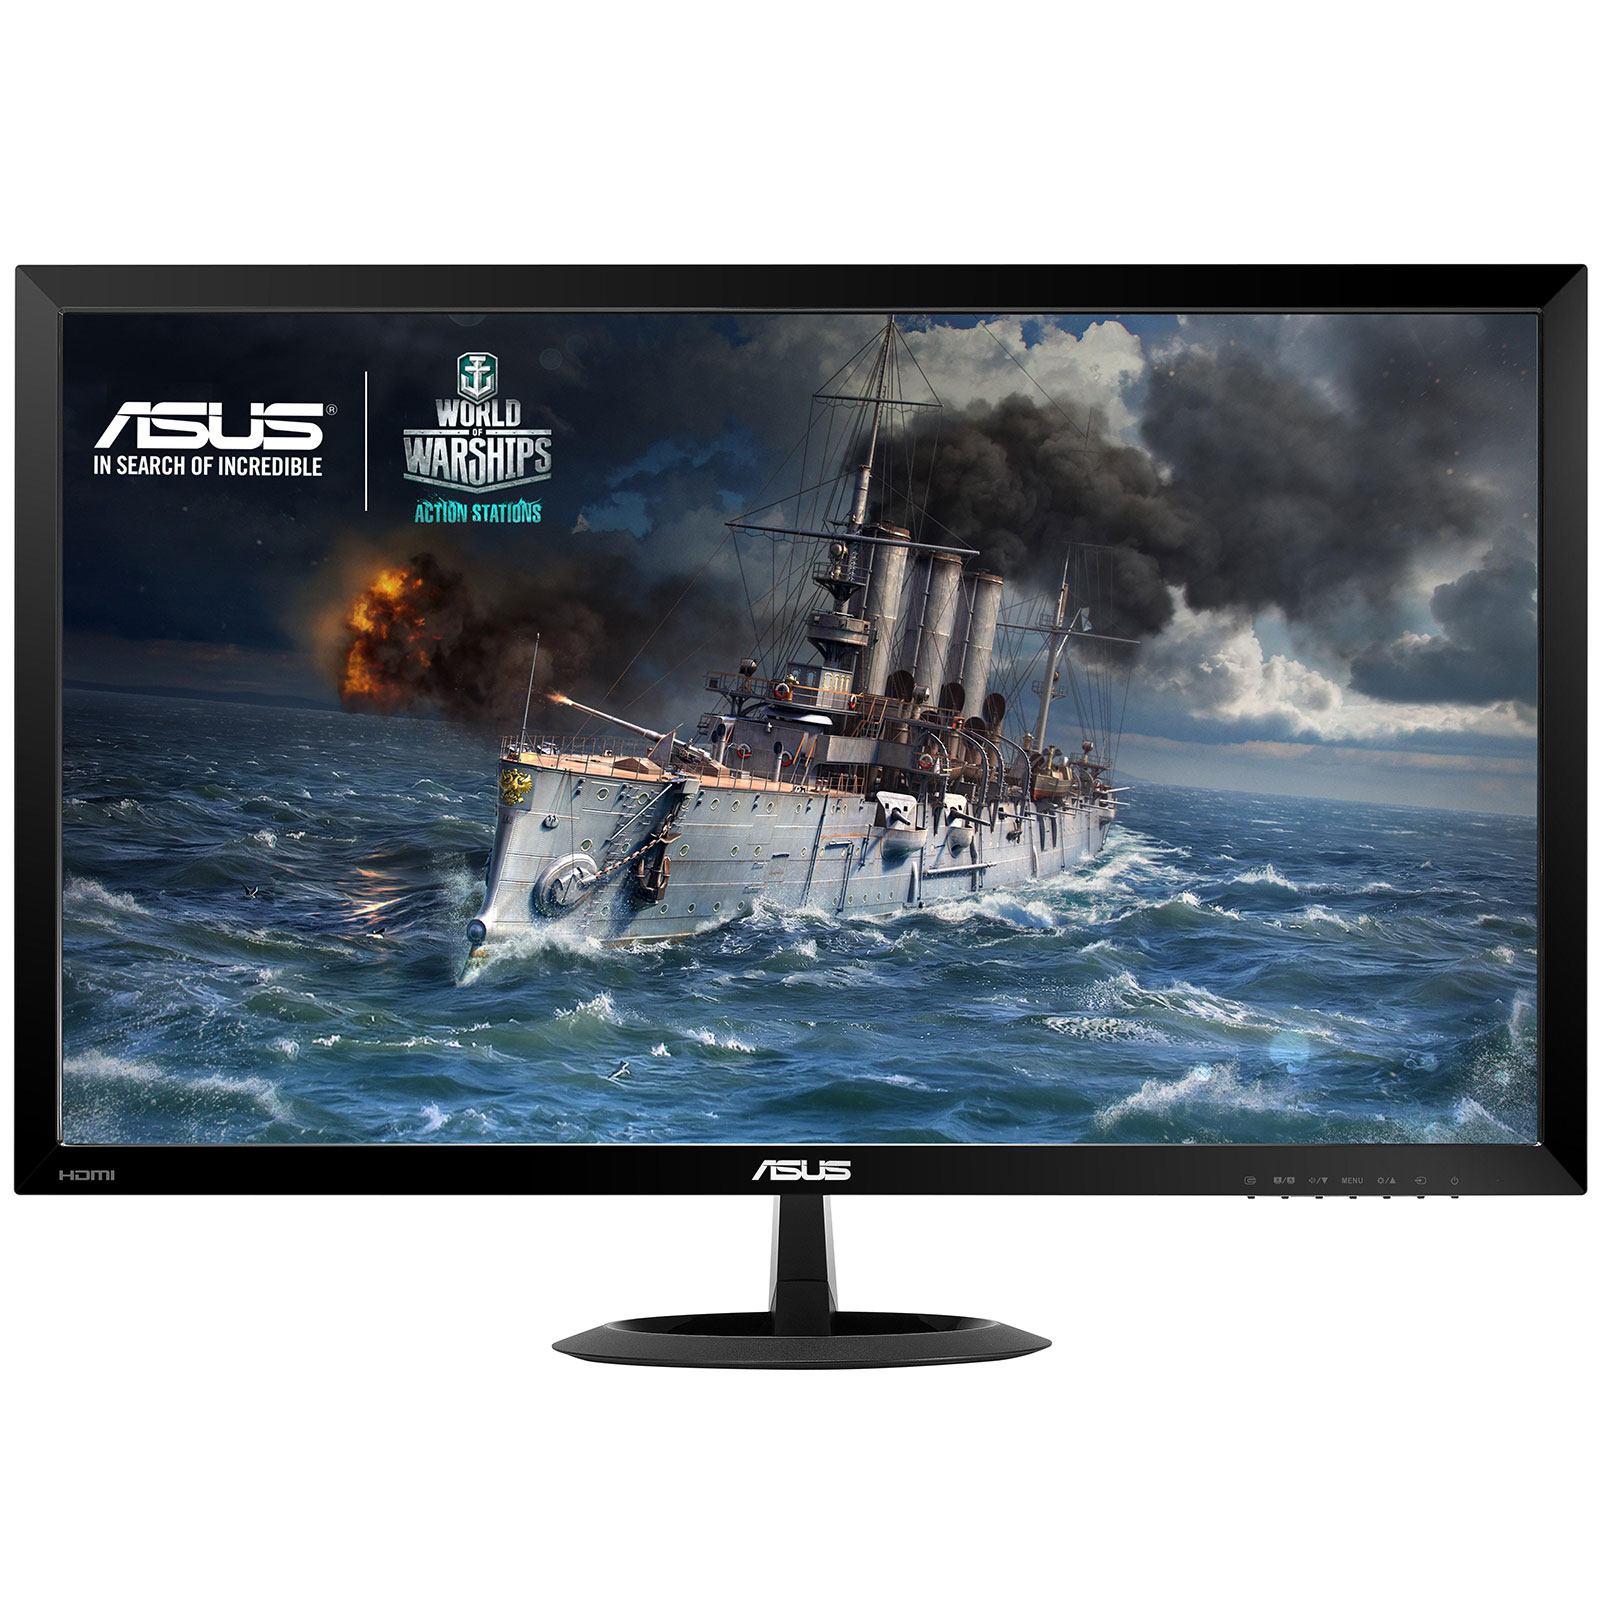 "Ecran PC ASUS 27"" LED - VX278H 1920 x 1080 pixels - 1 ms (gris à gris) - Format large 16/9 - Ultra Low Blue Light + Flicker Free - HDMI (garantie constructeur 3 ans)"